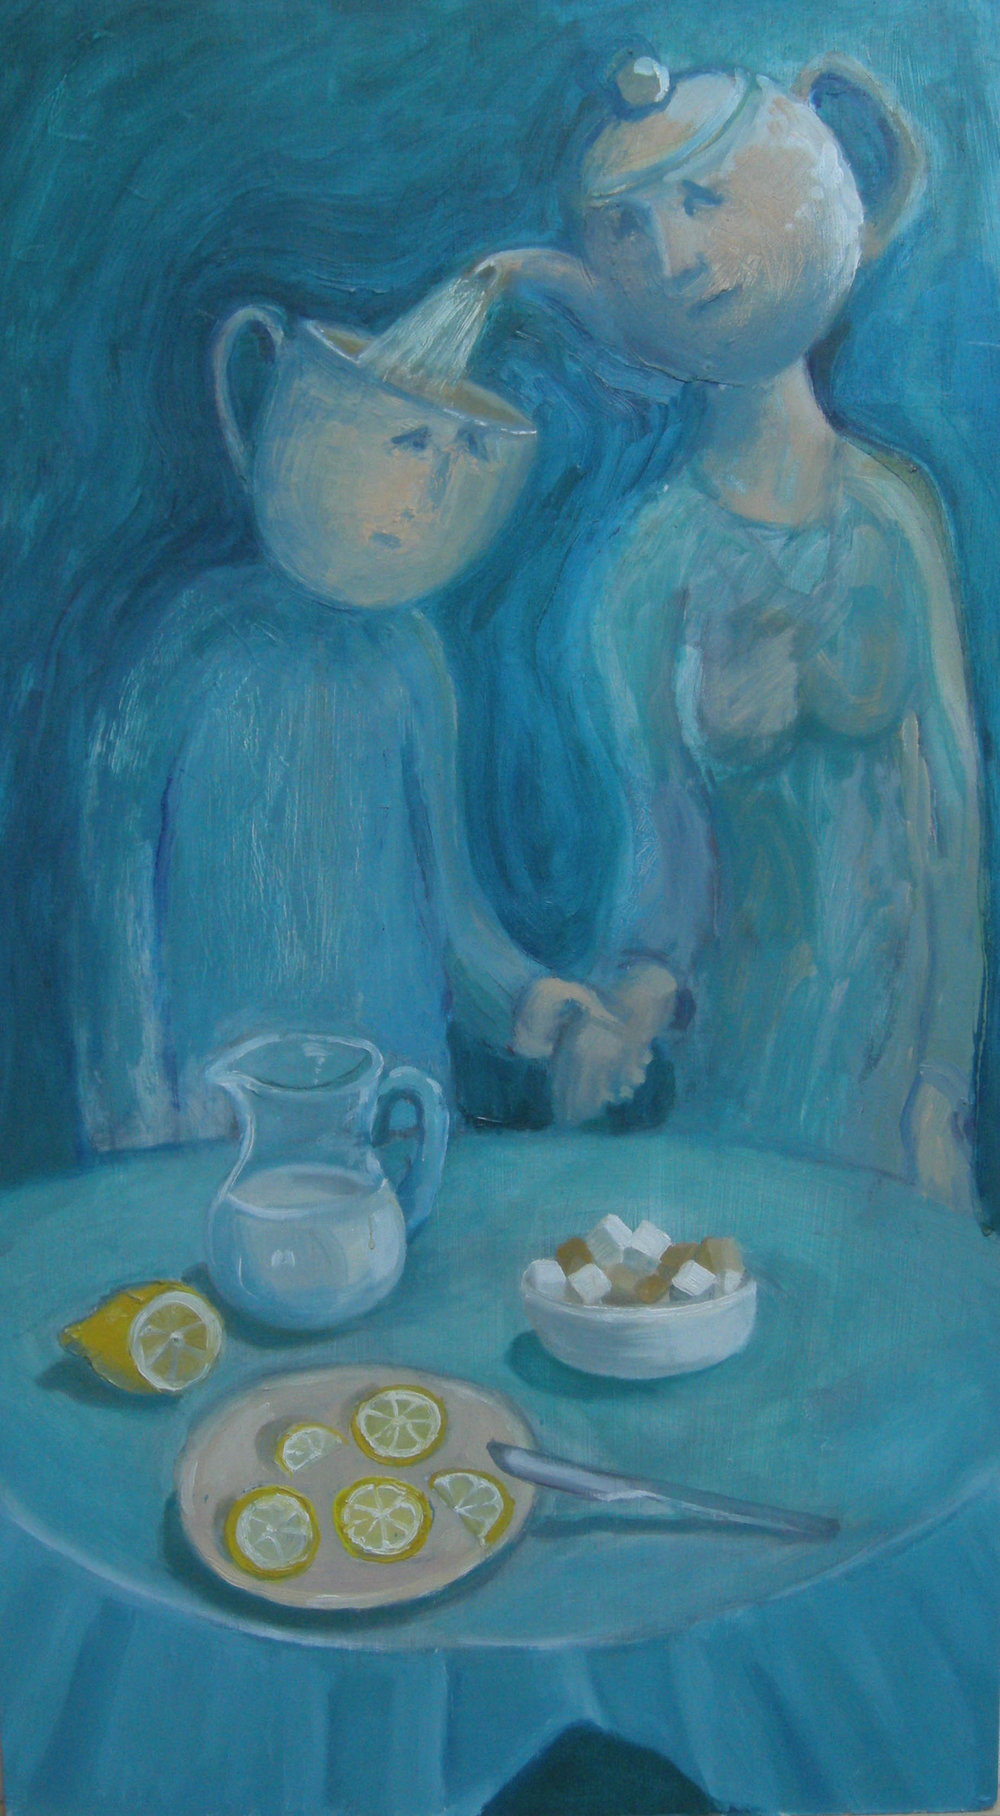 TEA FOR TWO  Oil on Wood | 35 x 63 cm | 2016 (Available - price on request)